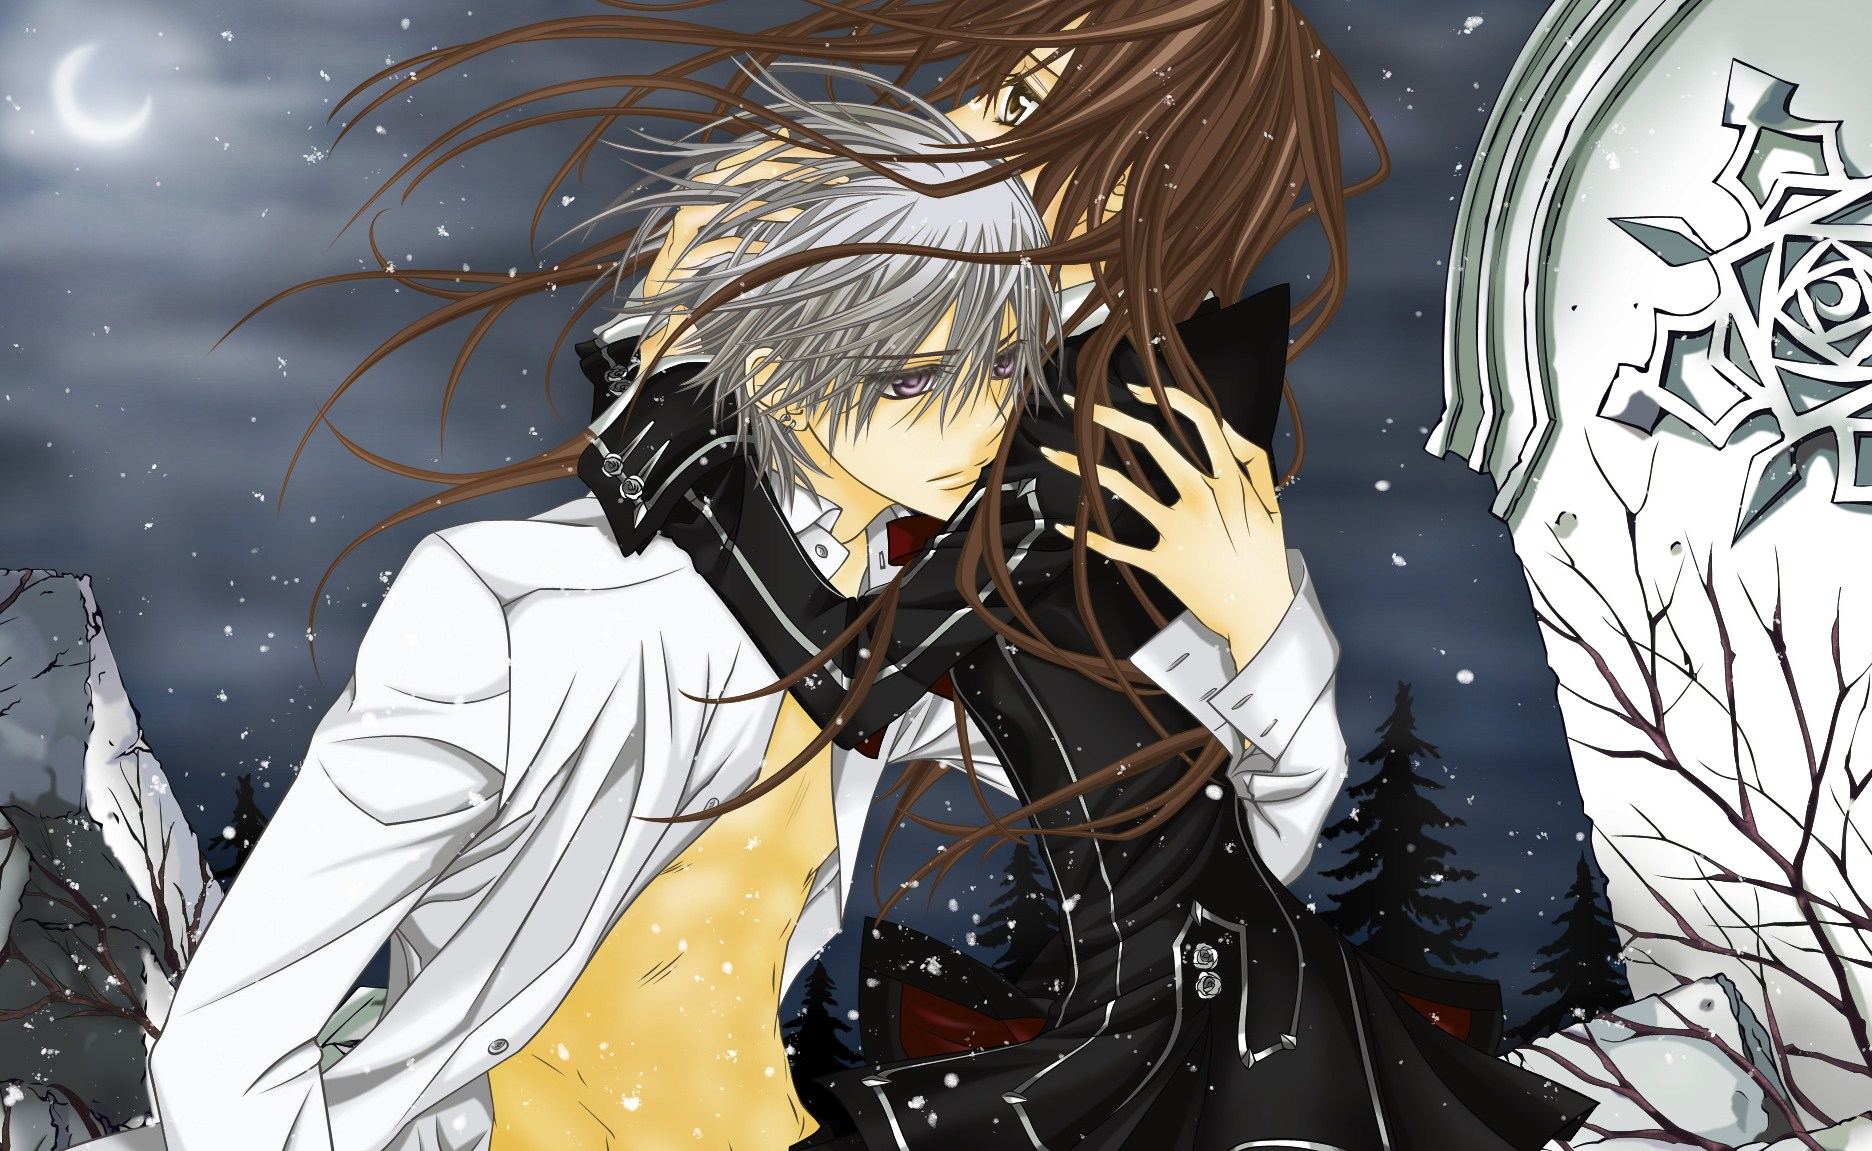 Vampire knight wallpaper and background image 1872x1151 - Vampire knight anime wallpaper ...